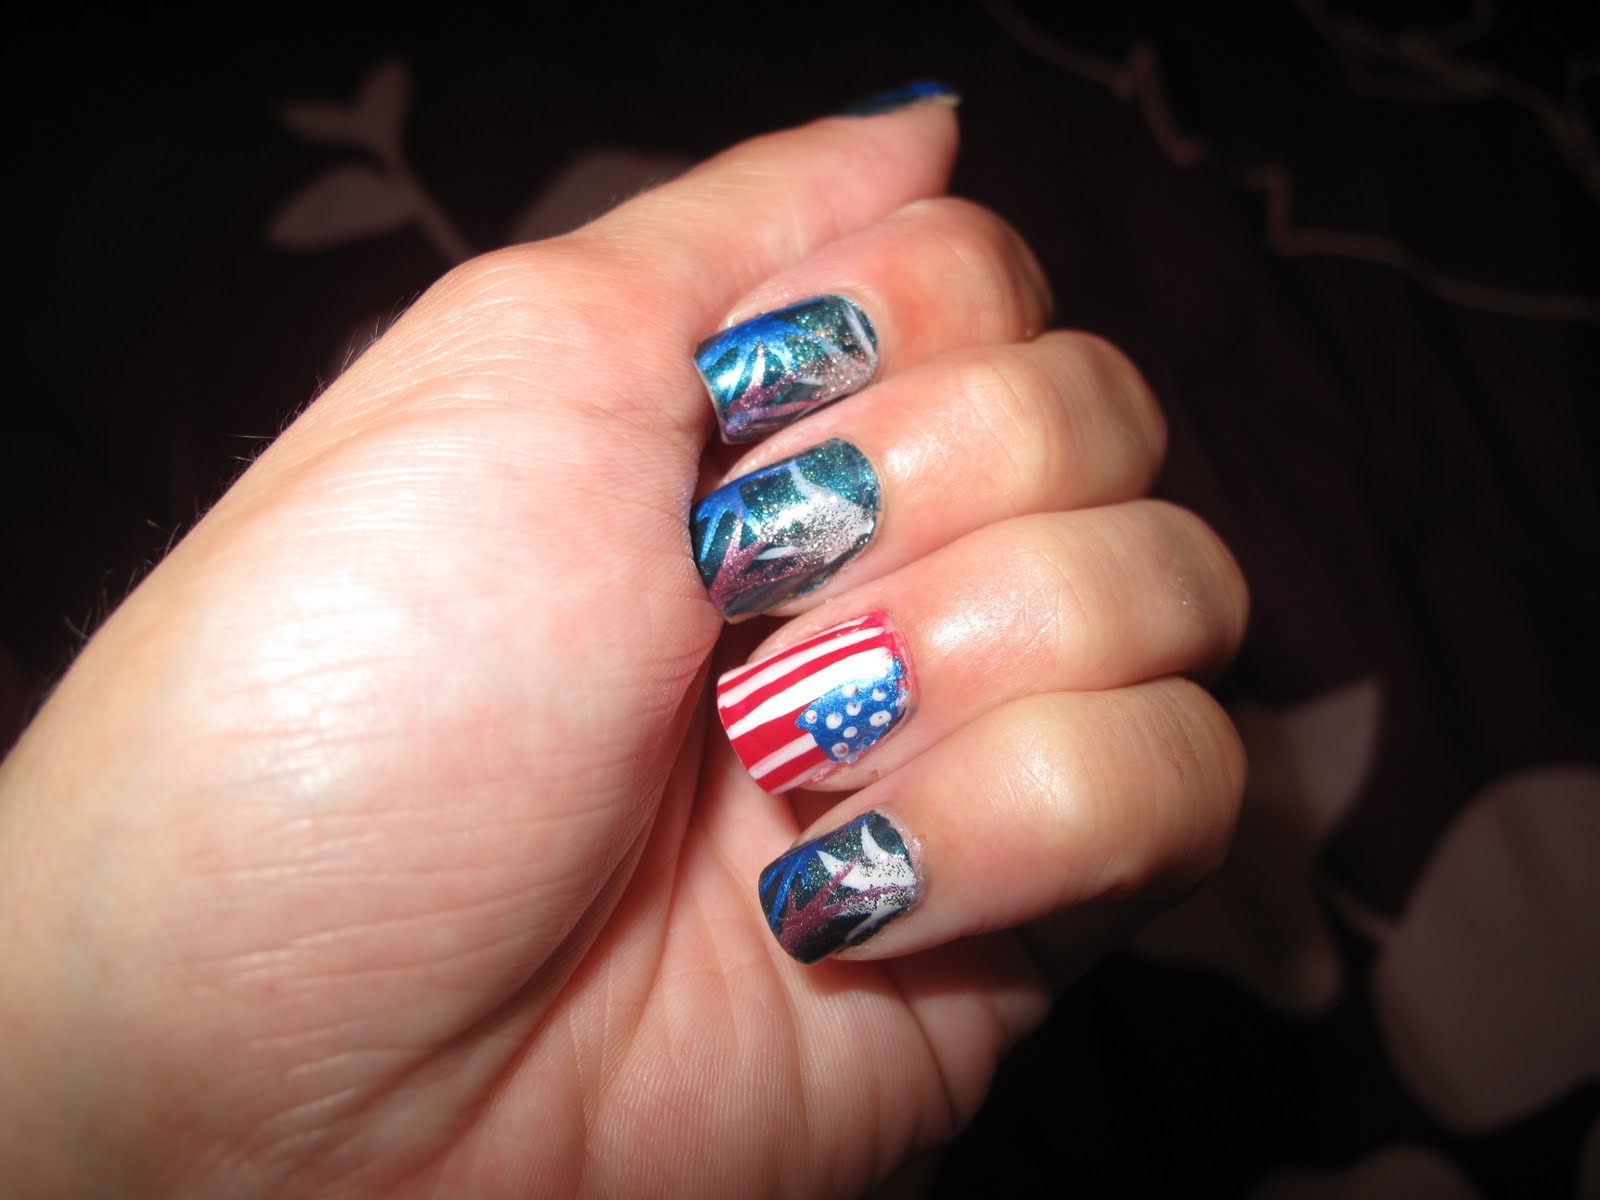 Nail Designs: 4th of July manicures!